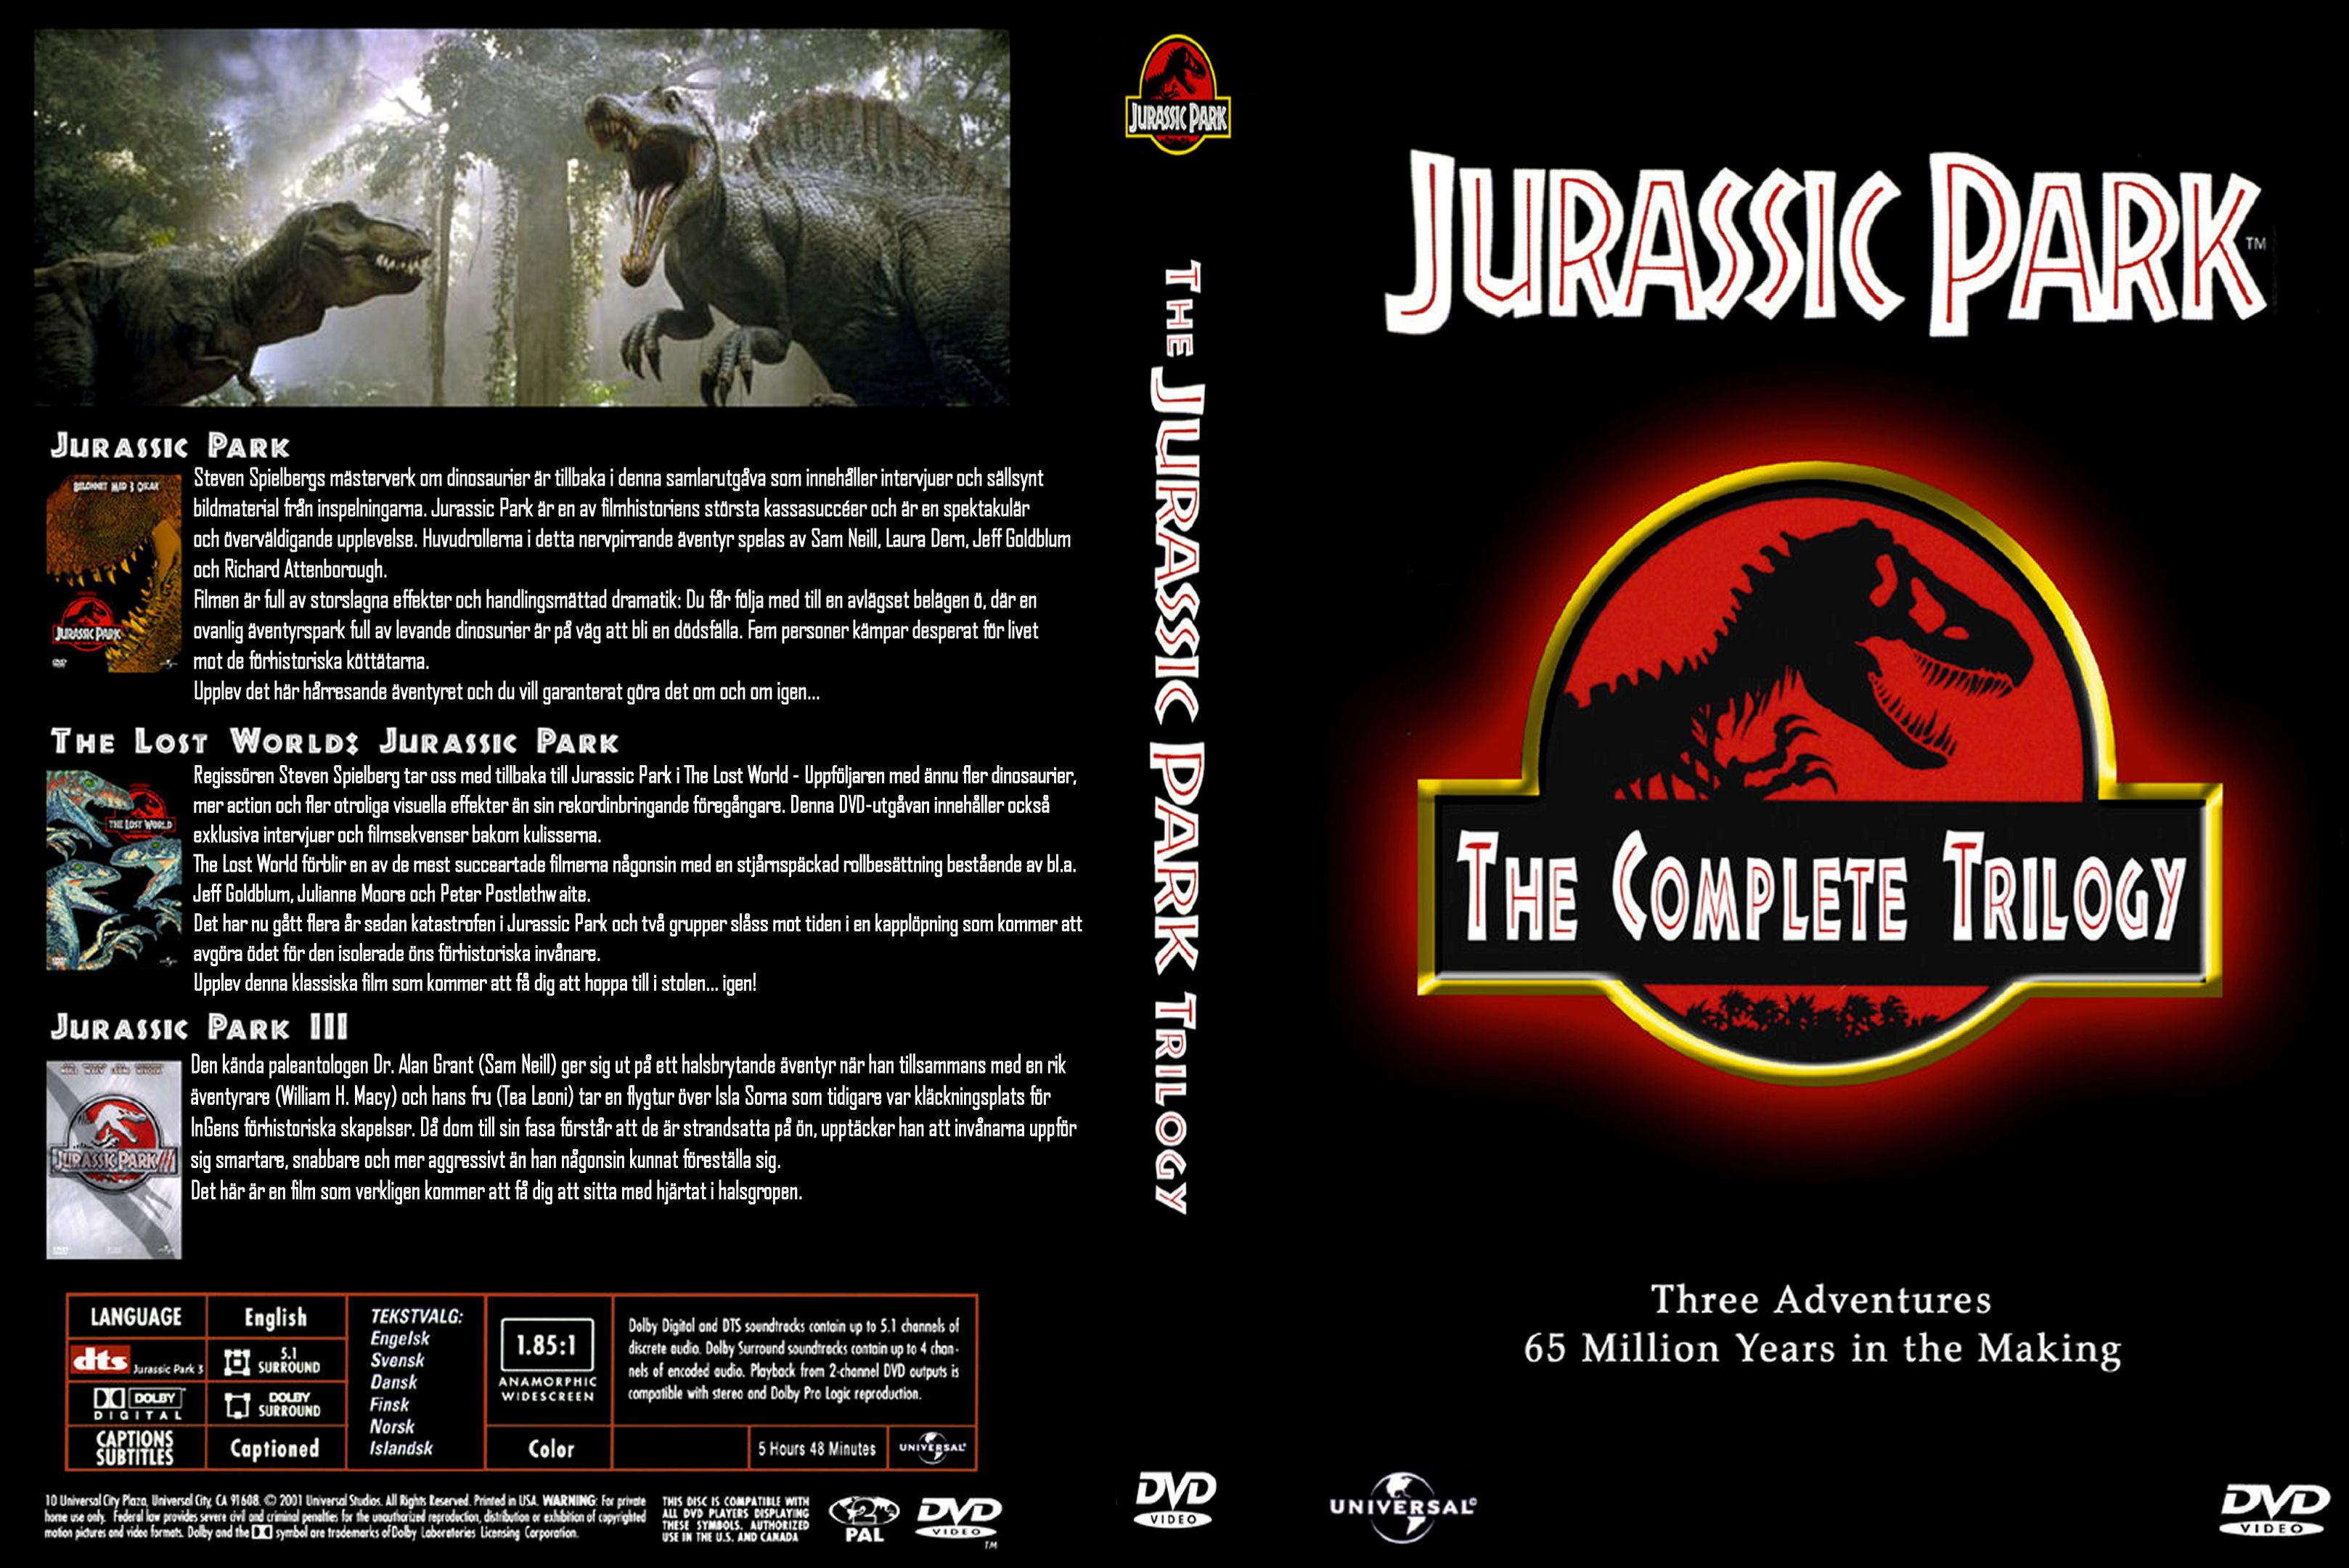 Movie Front Covers Covers Box Sk Jurassic Park Trilogy High Quality Dvd Blueray Movie Covers Jurassic Park Trilogy Dvd Covers